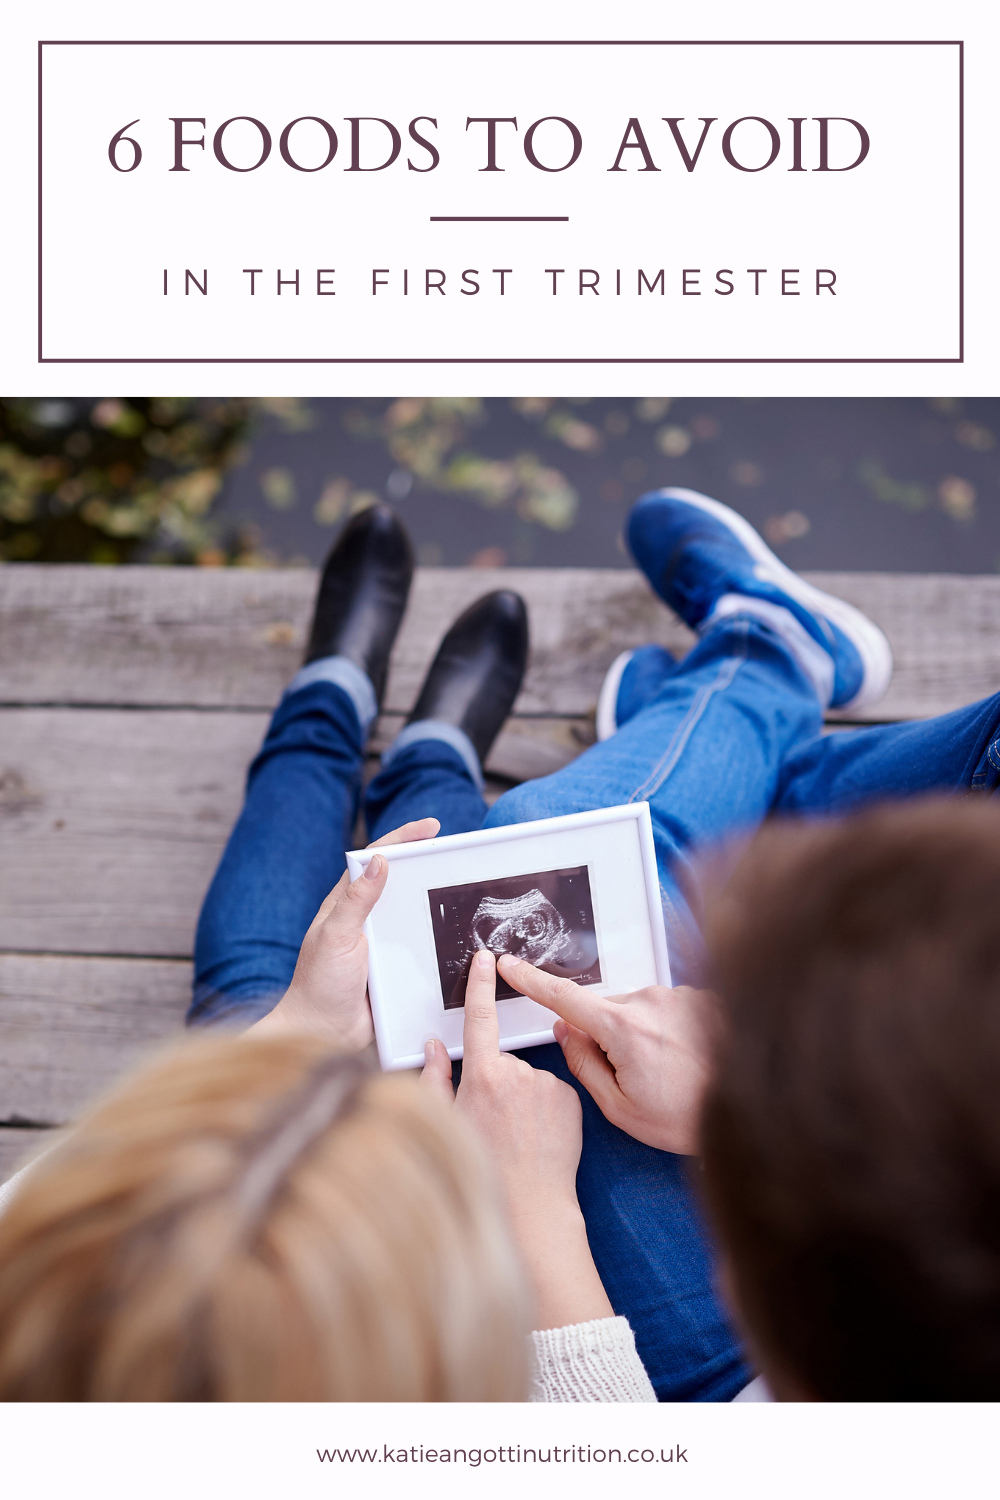 Foods to avoid in pregnancy and the first trimester from a pregnancy nutritionist